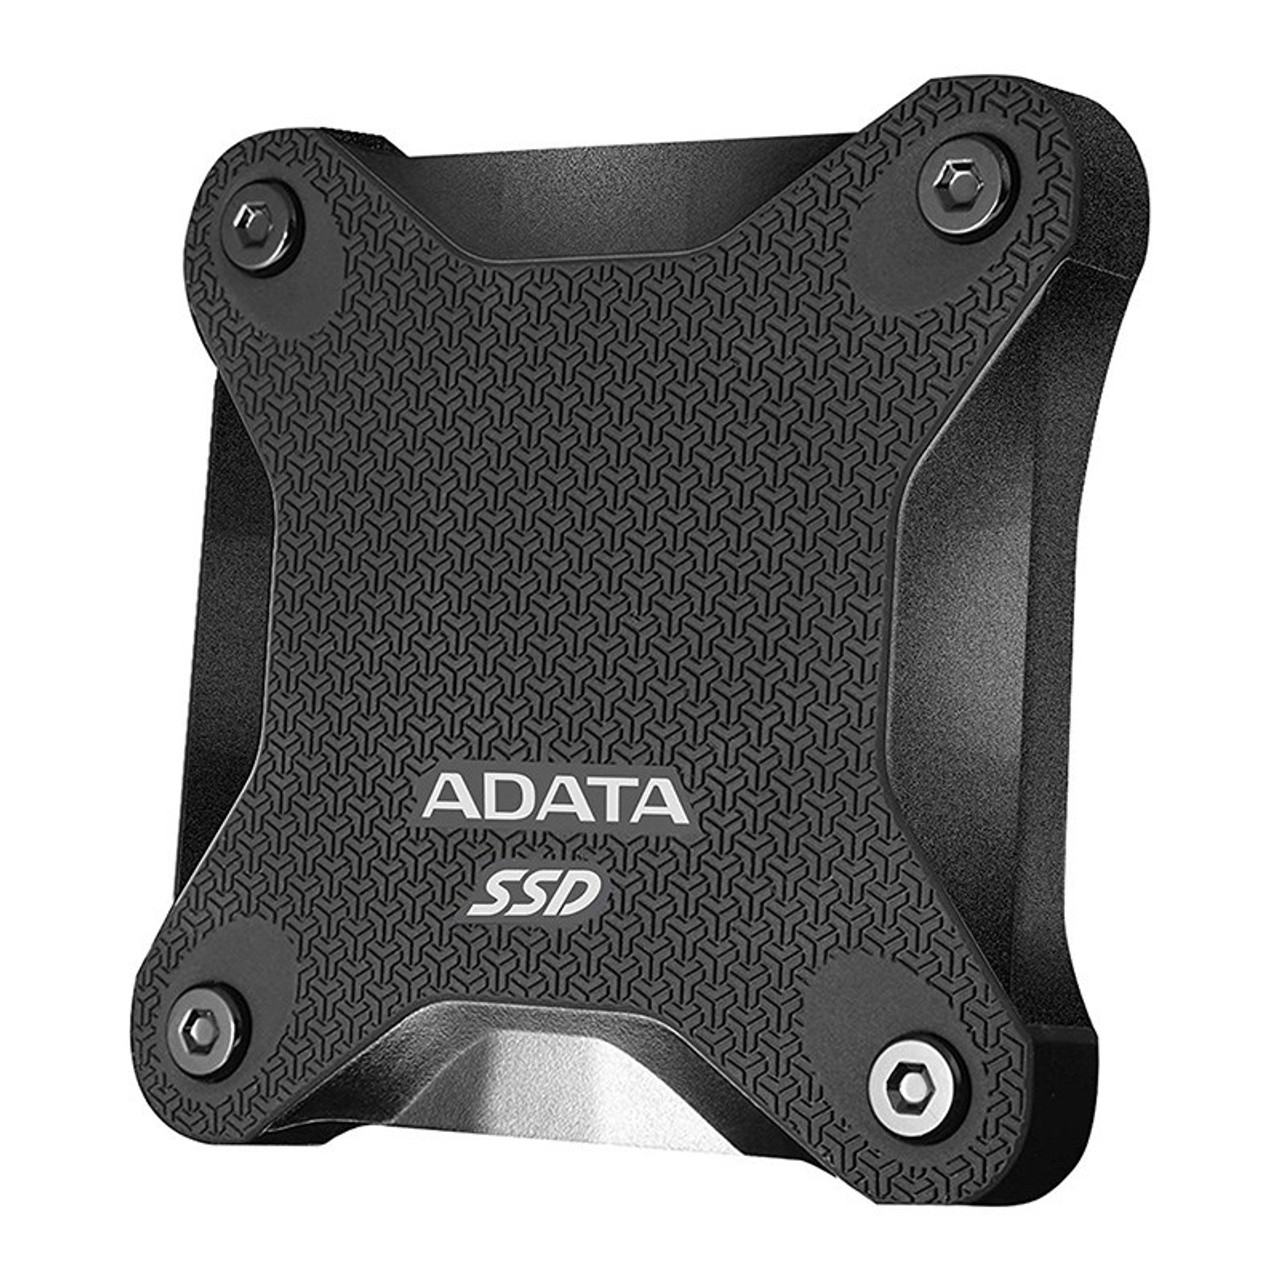 Image for Adata SD600Q 480GB USB 3.2 Gen 1 Portable External 3D NAND SSD - Black CX Computer Superstore